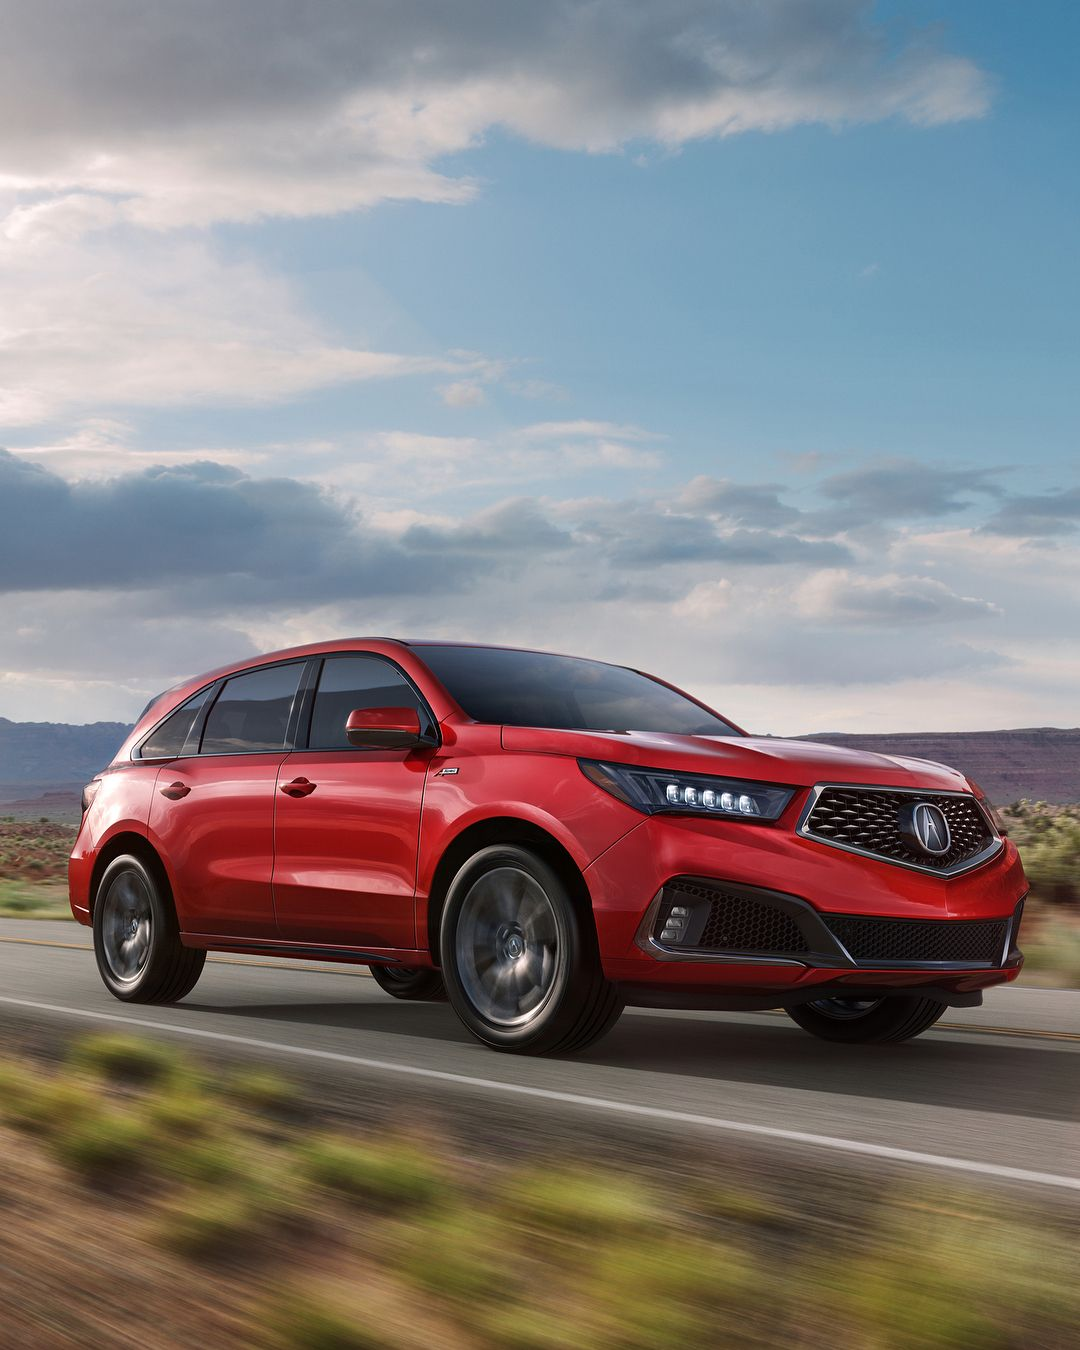 The 2019 Acura MDX @motortrend On Instagram